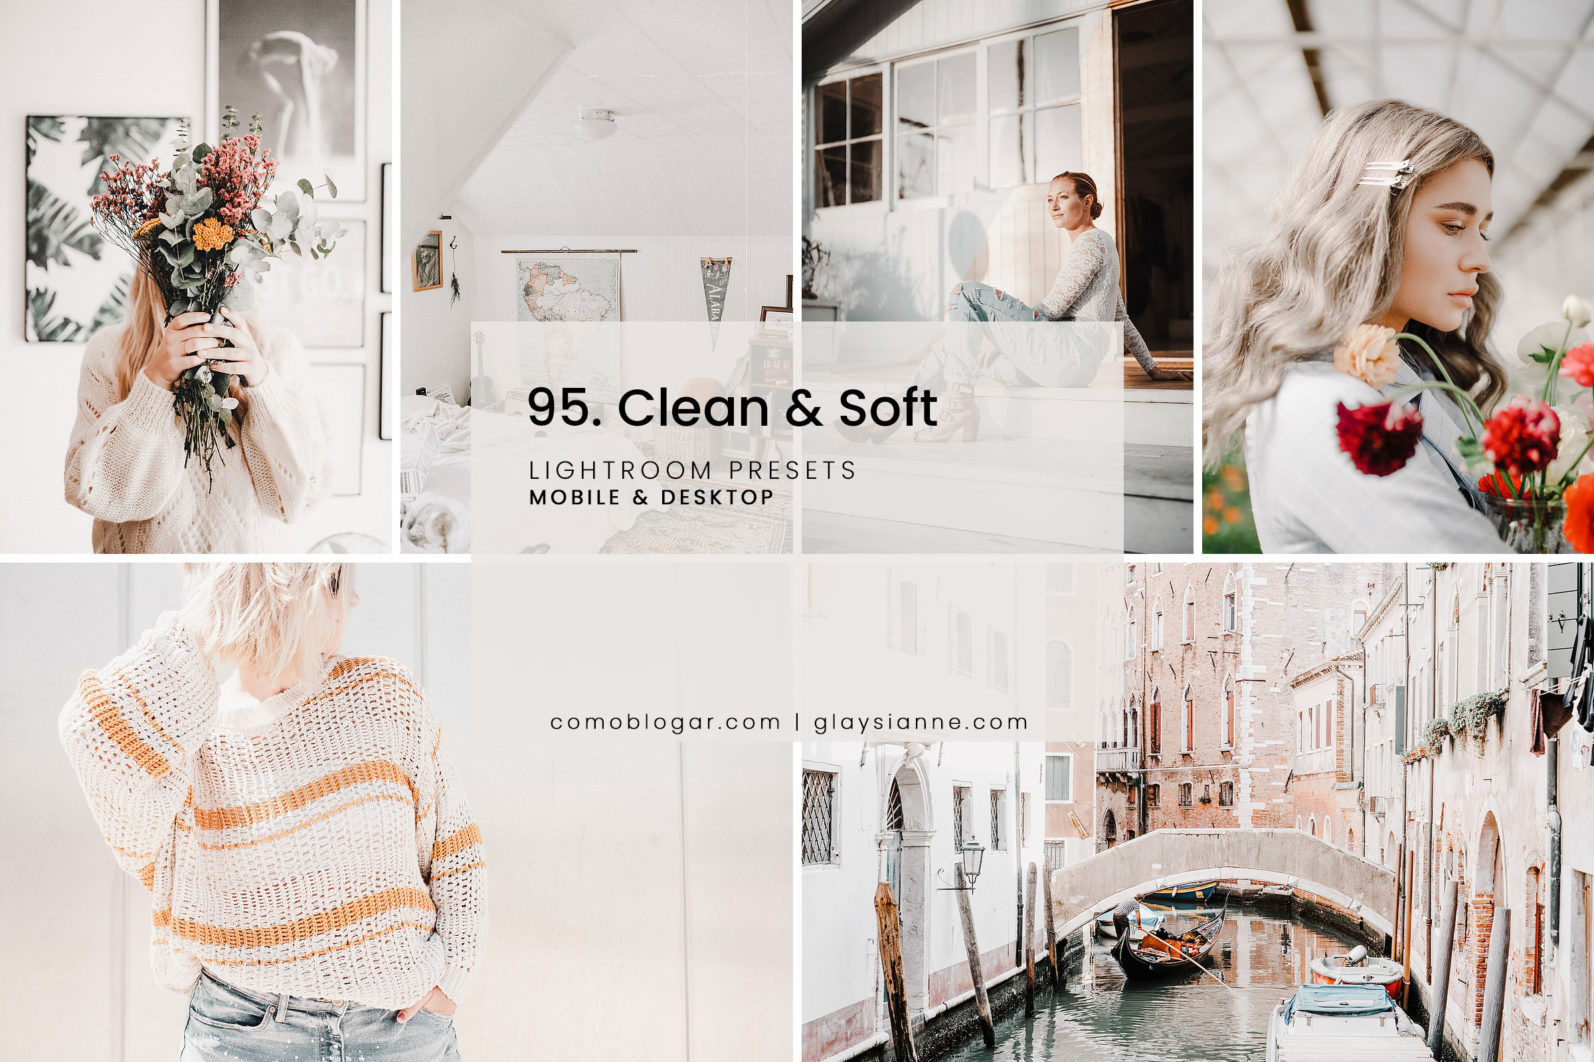 95. Clean & Soft - 95.Soft and 01 -